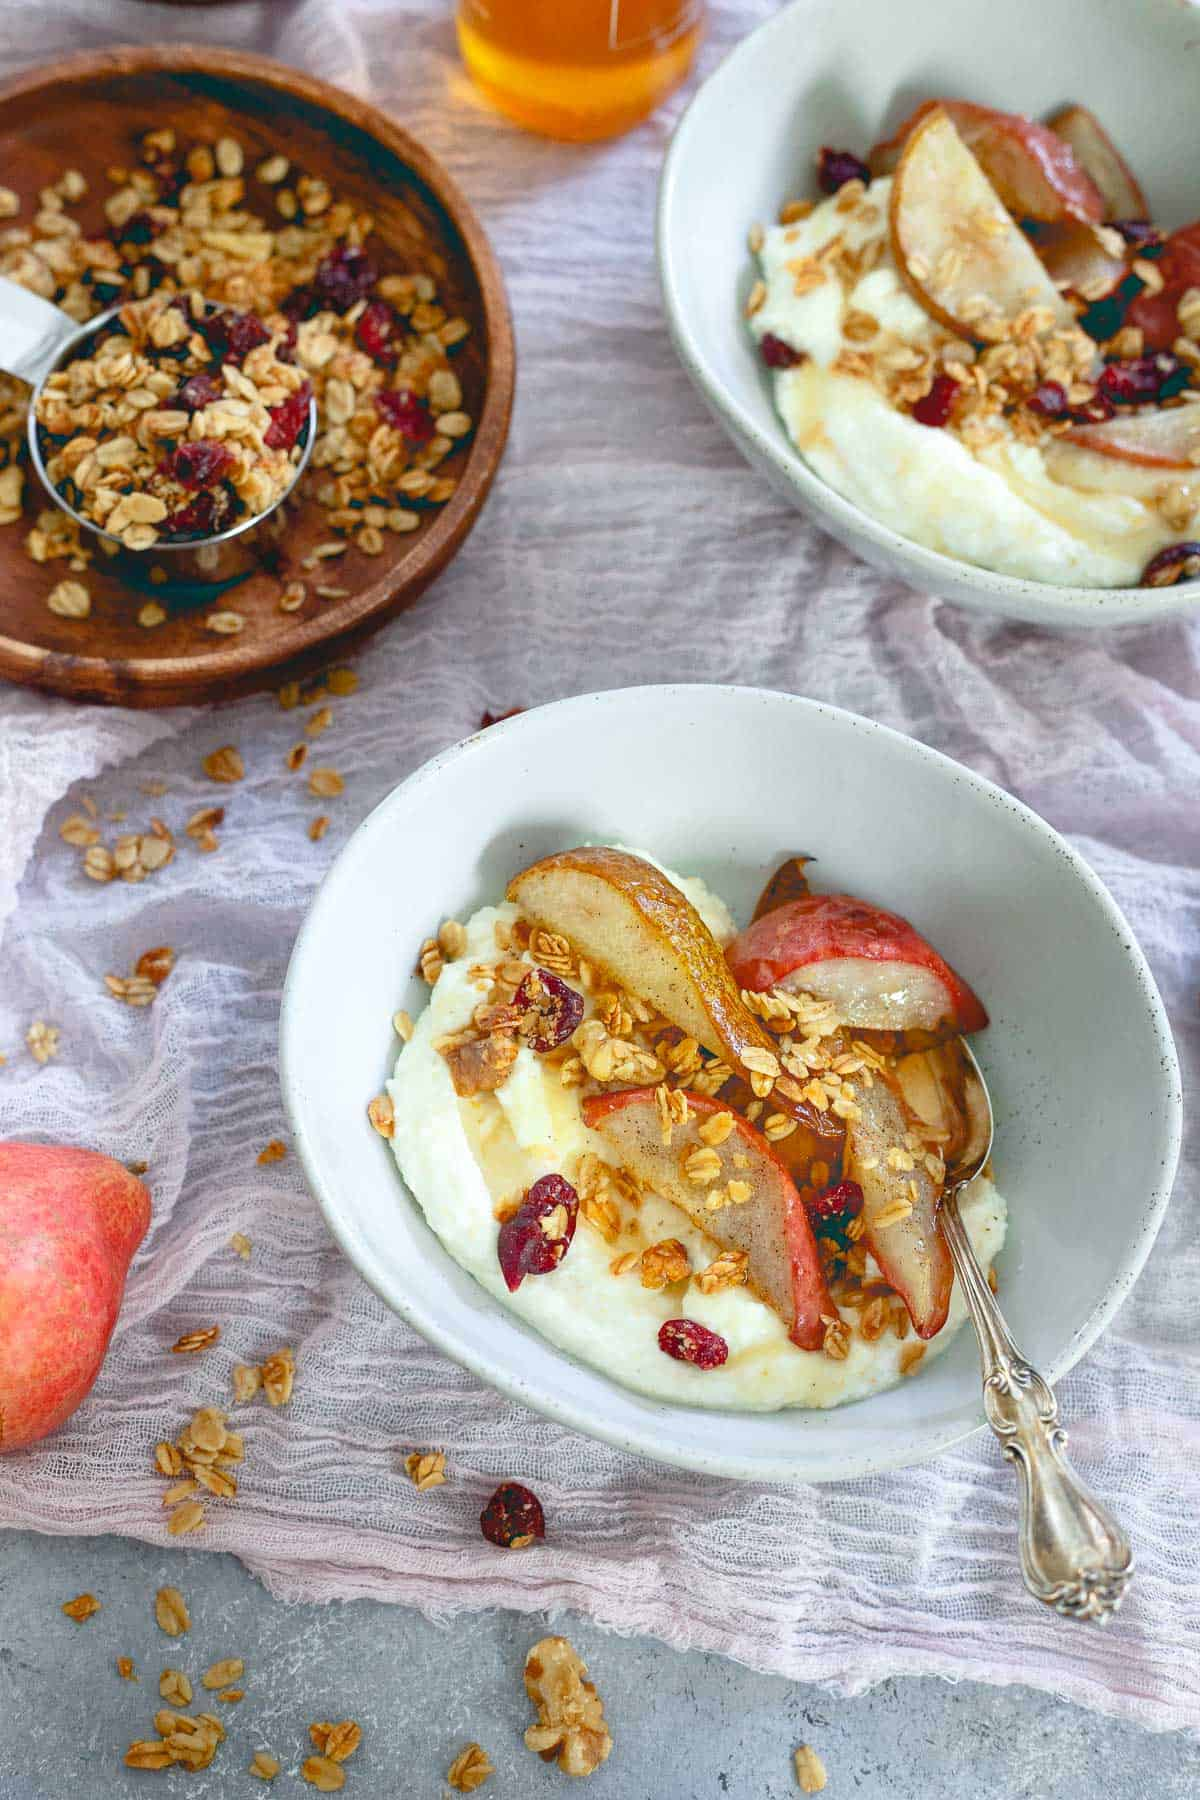 A seasonally delicious snack or breakfast, these whipped ricotta bowls are filled with cranberry granola and roasted pears.